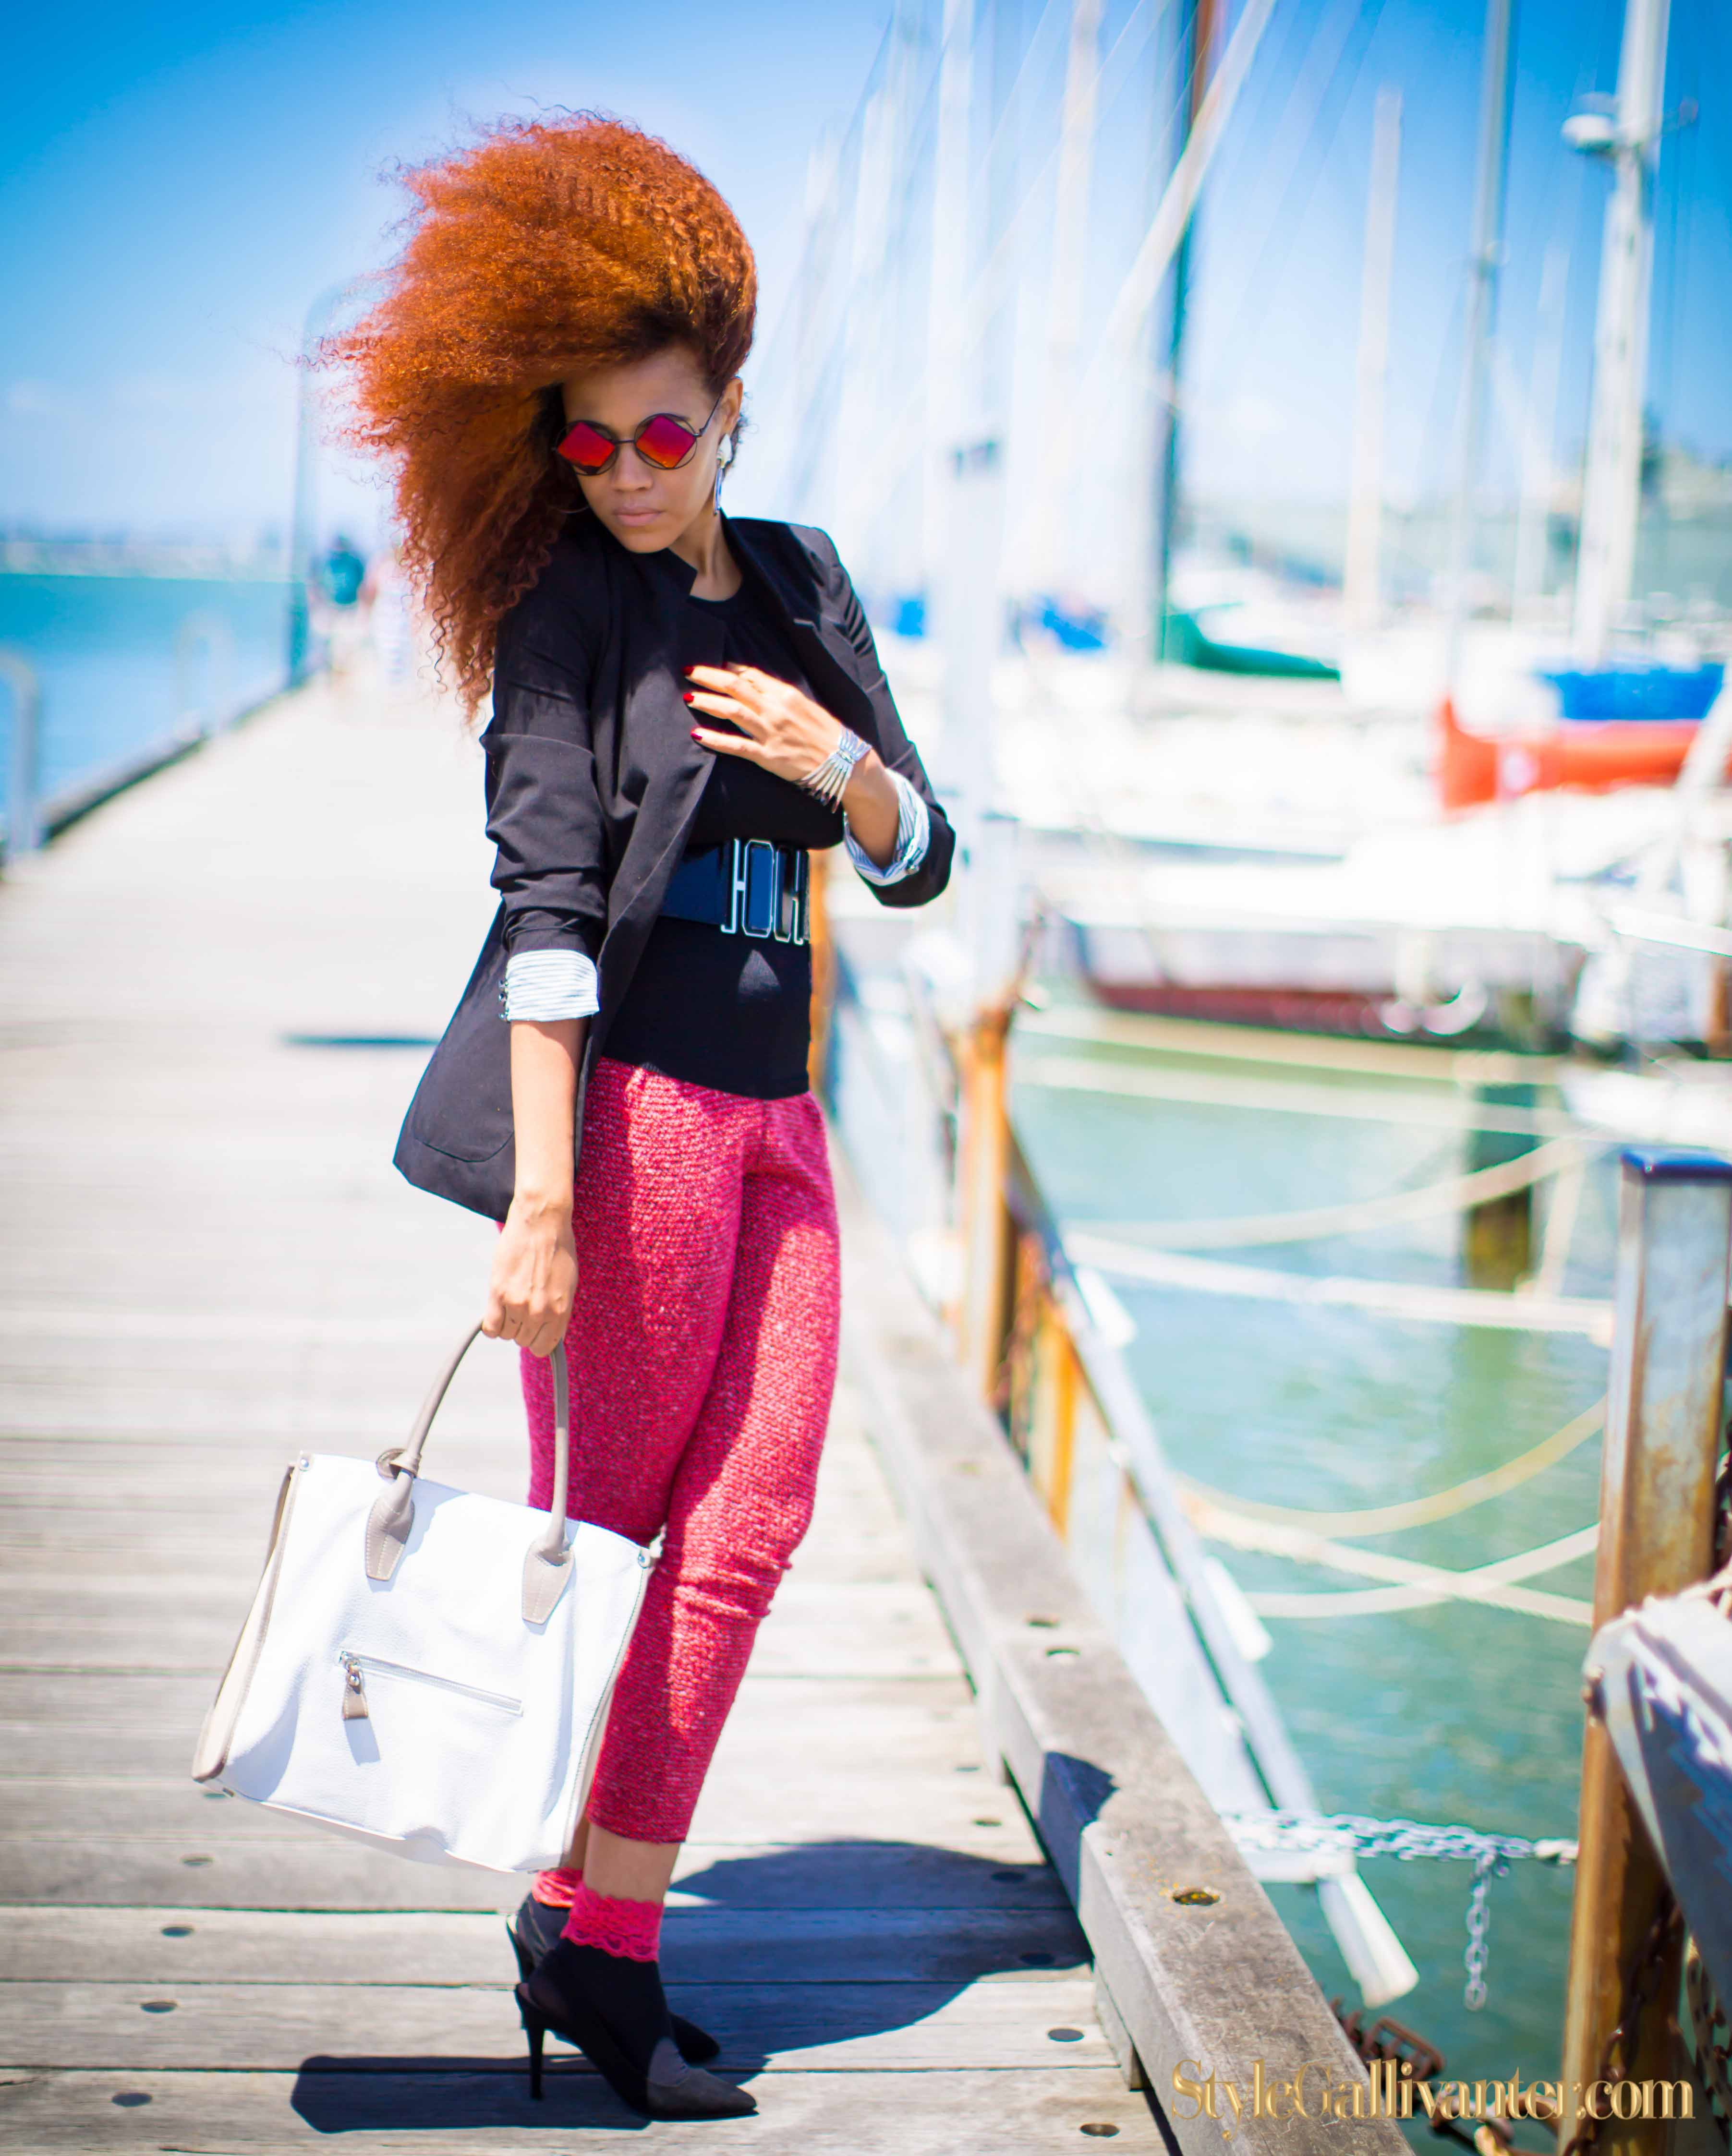 cover-girls-2014_the-face-australia_canberra-fashion-blogs_sydney-fashion-blogs_imternational-fashion-bloggers_africas-best-hair-bloggers_best-natural-hair-blogs-17